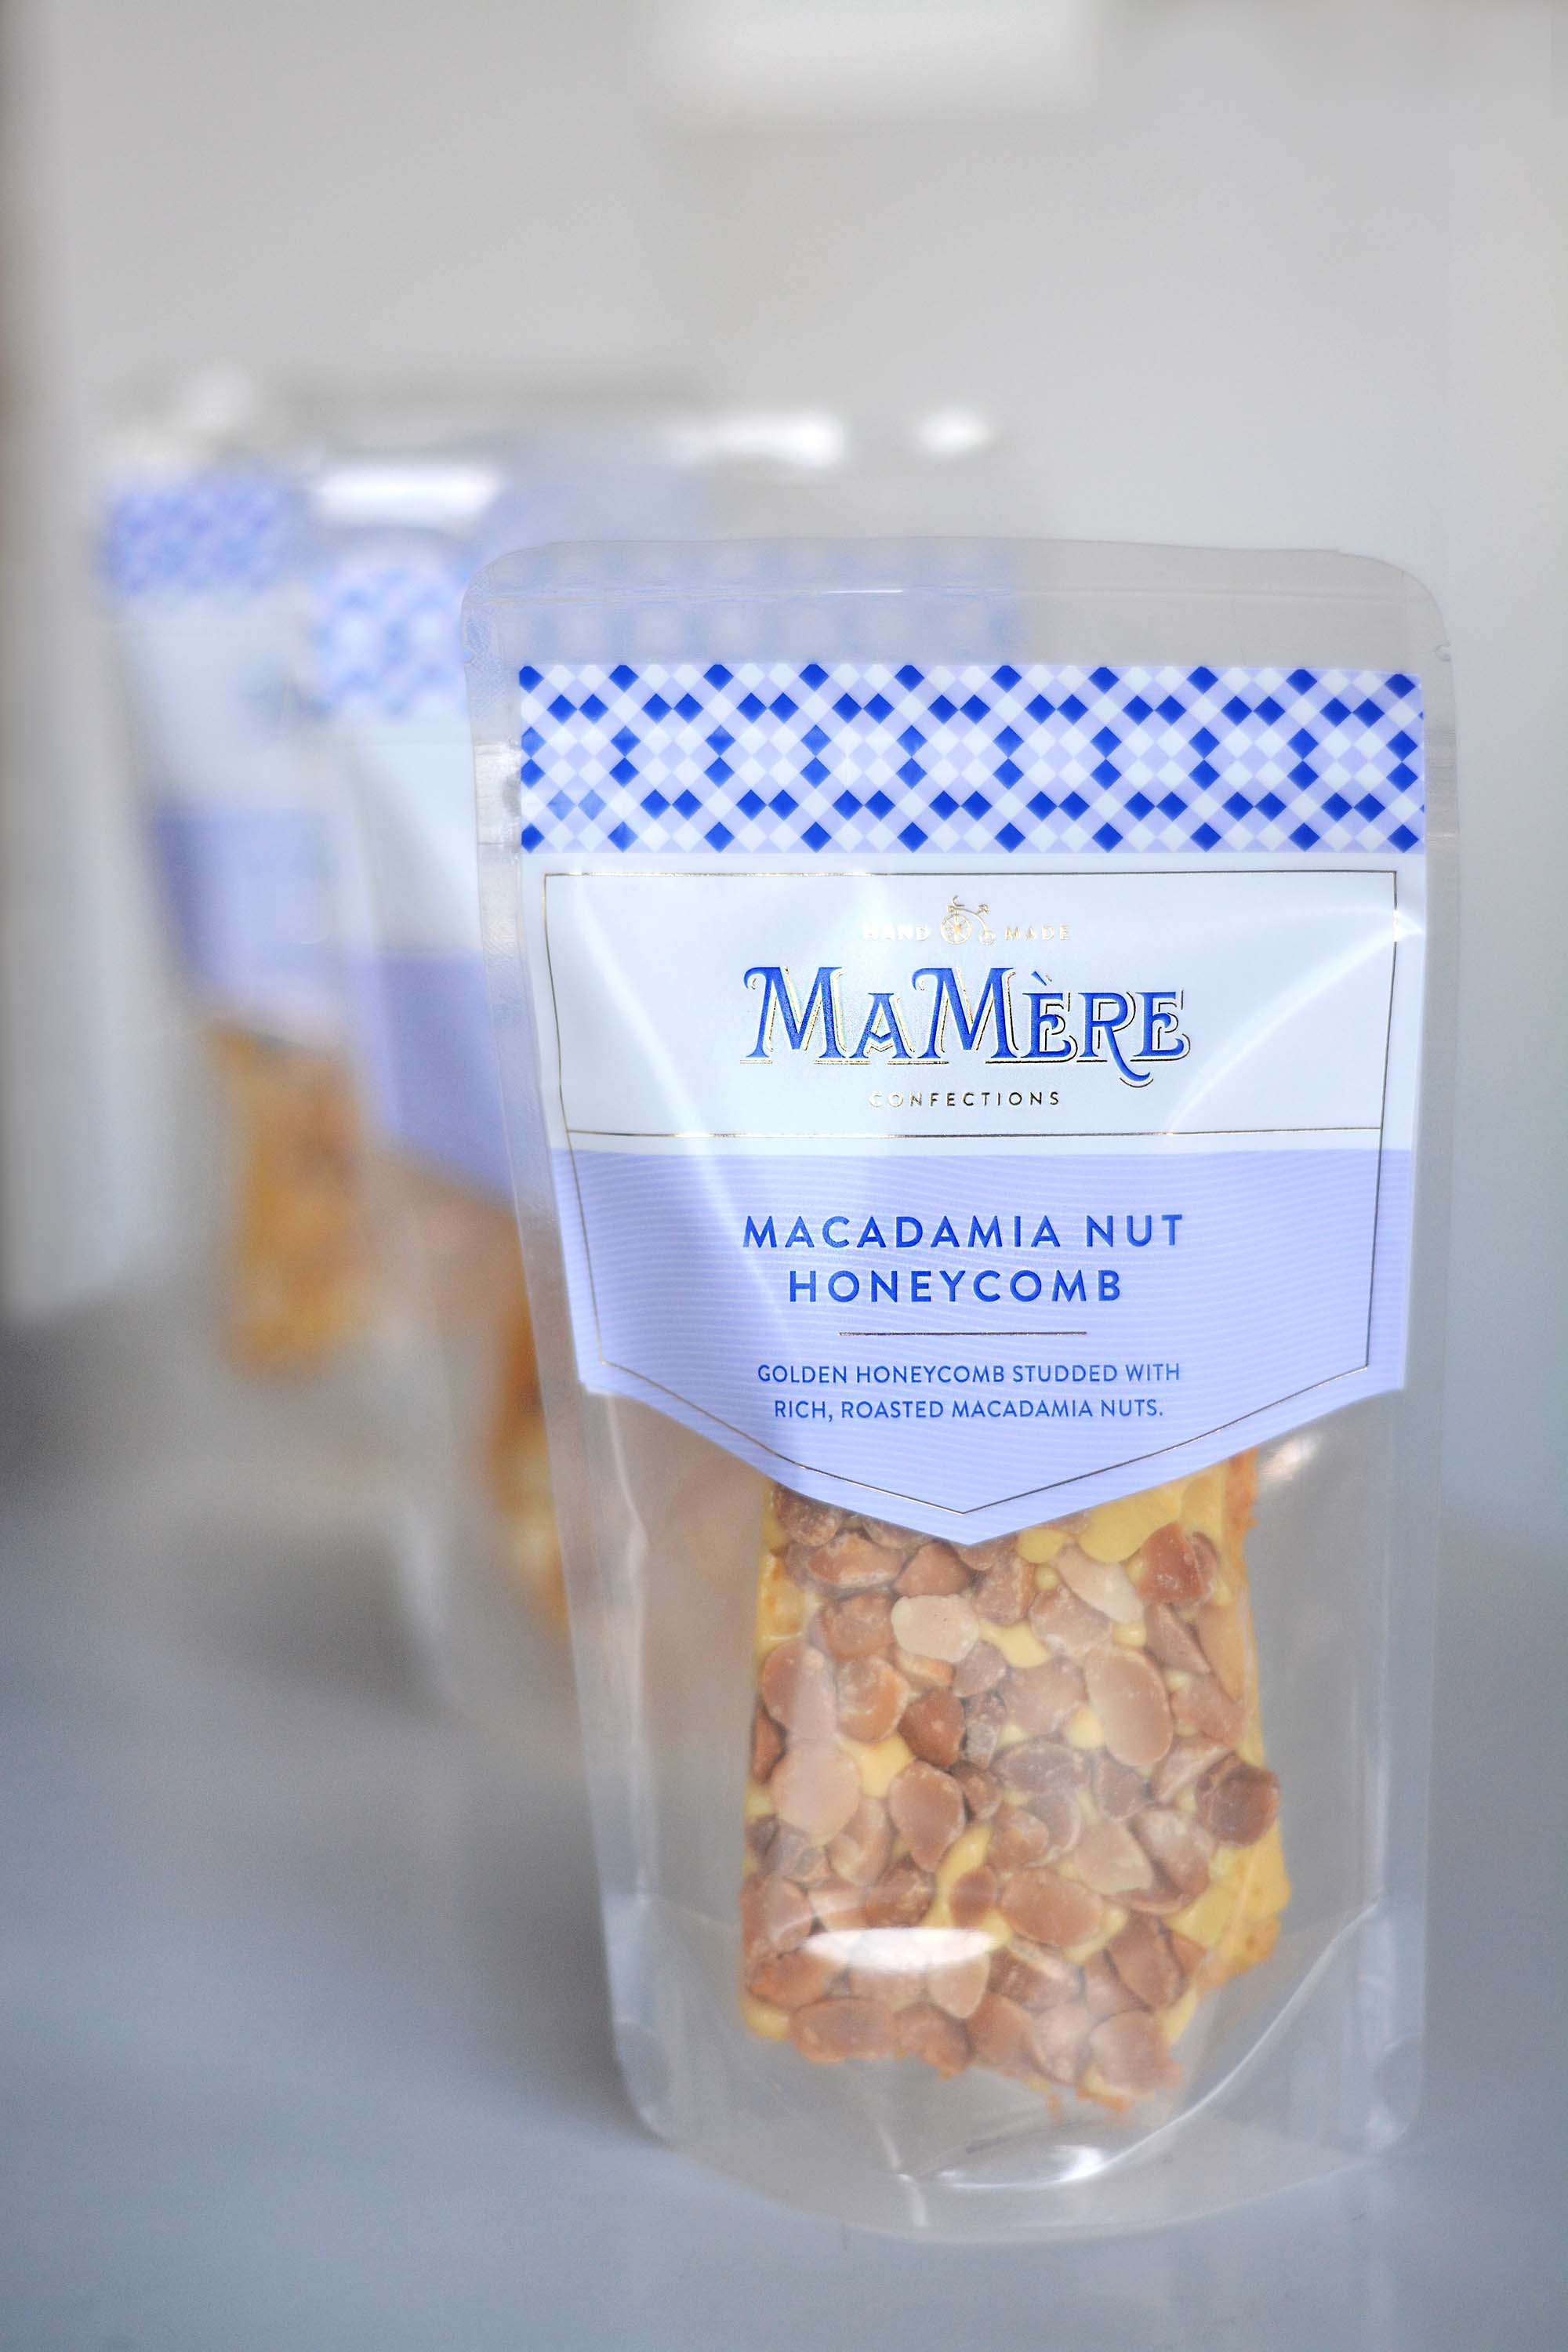 MACADAMIA NUT HONEYCOMB